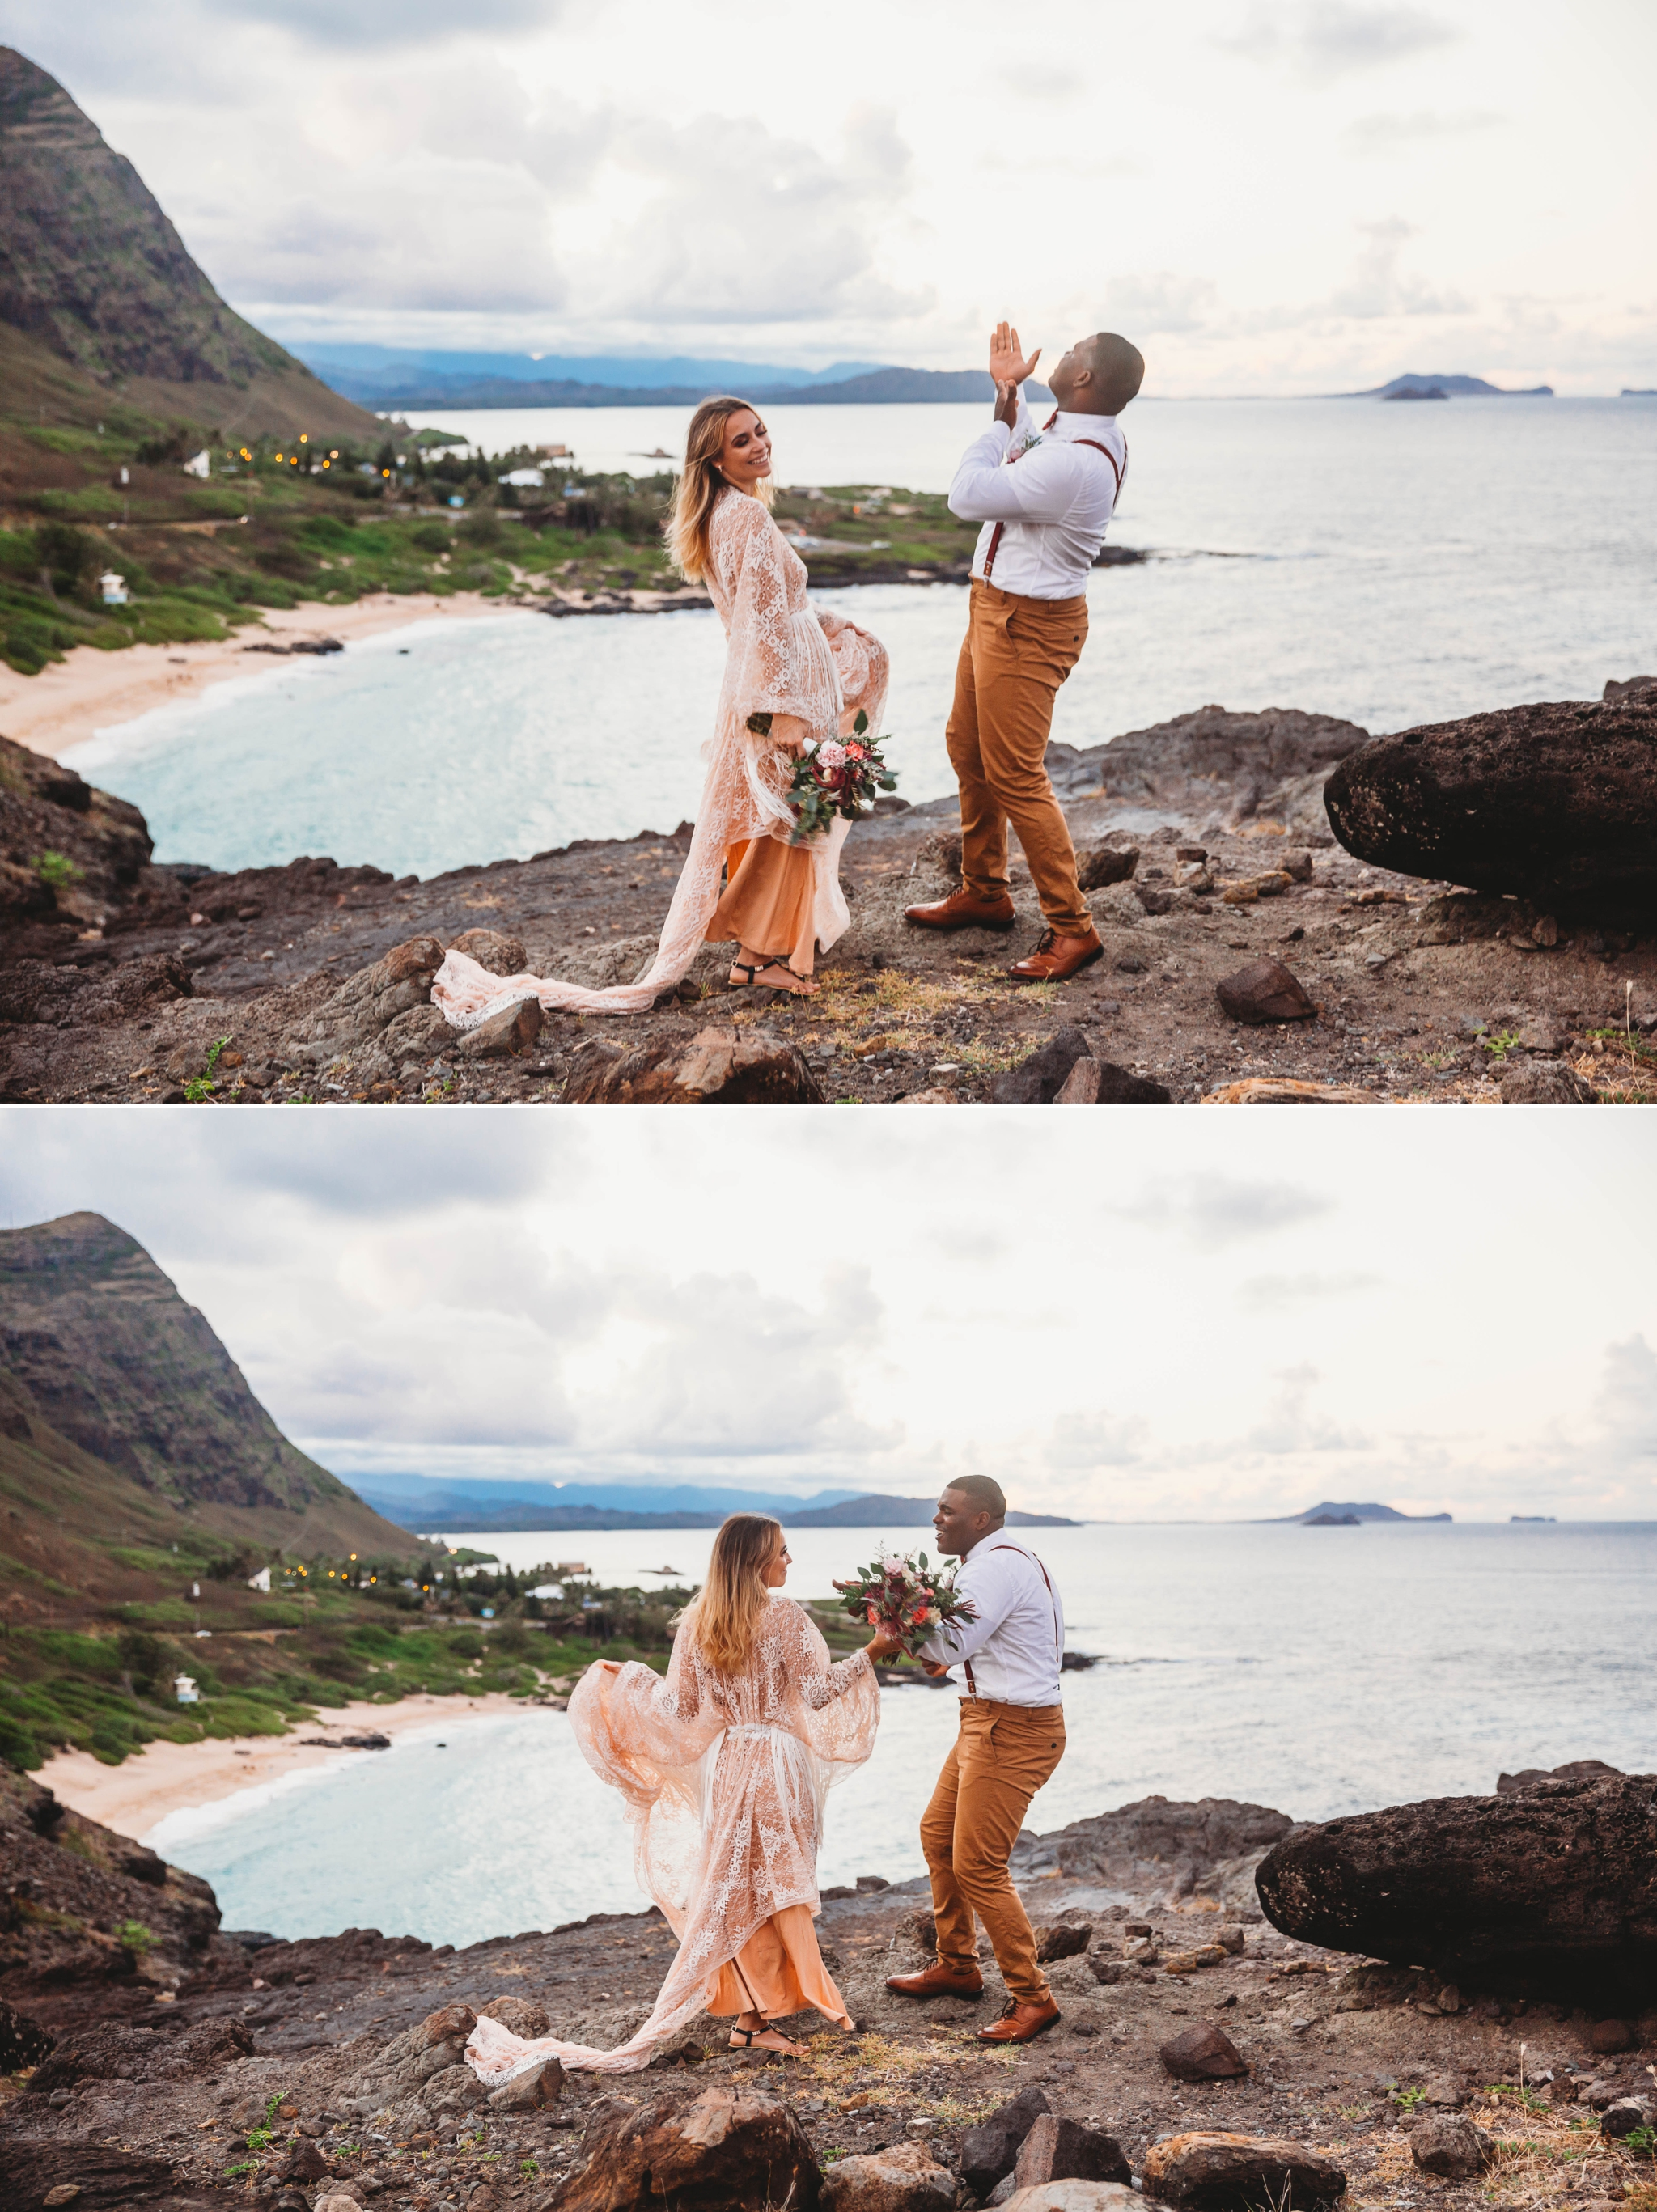 couple dancing full of happiness - wedding ceremony at Makapuu Lookout overlooking the ocean and beach, Waimanalo, HI - Oahu Hawaii Engagement Photographer - Bride in a flowy fringe boho wedding dress - lanikai lookout - deutsche hochzeits fotografin in hawaii - smal1 - dark and moody - true to live